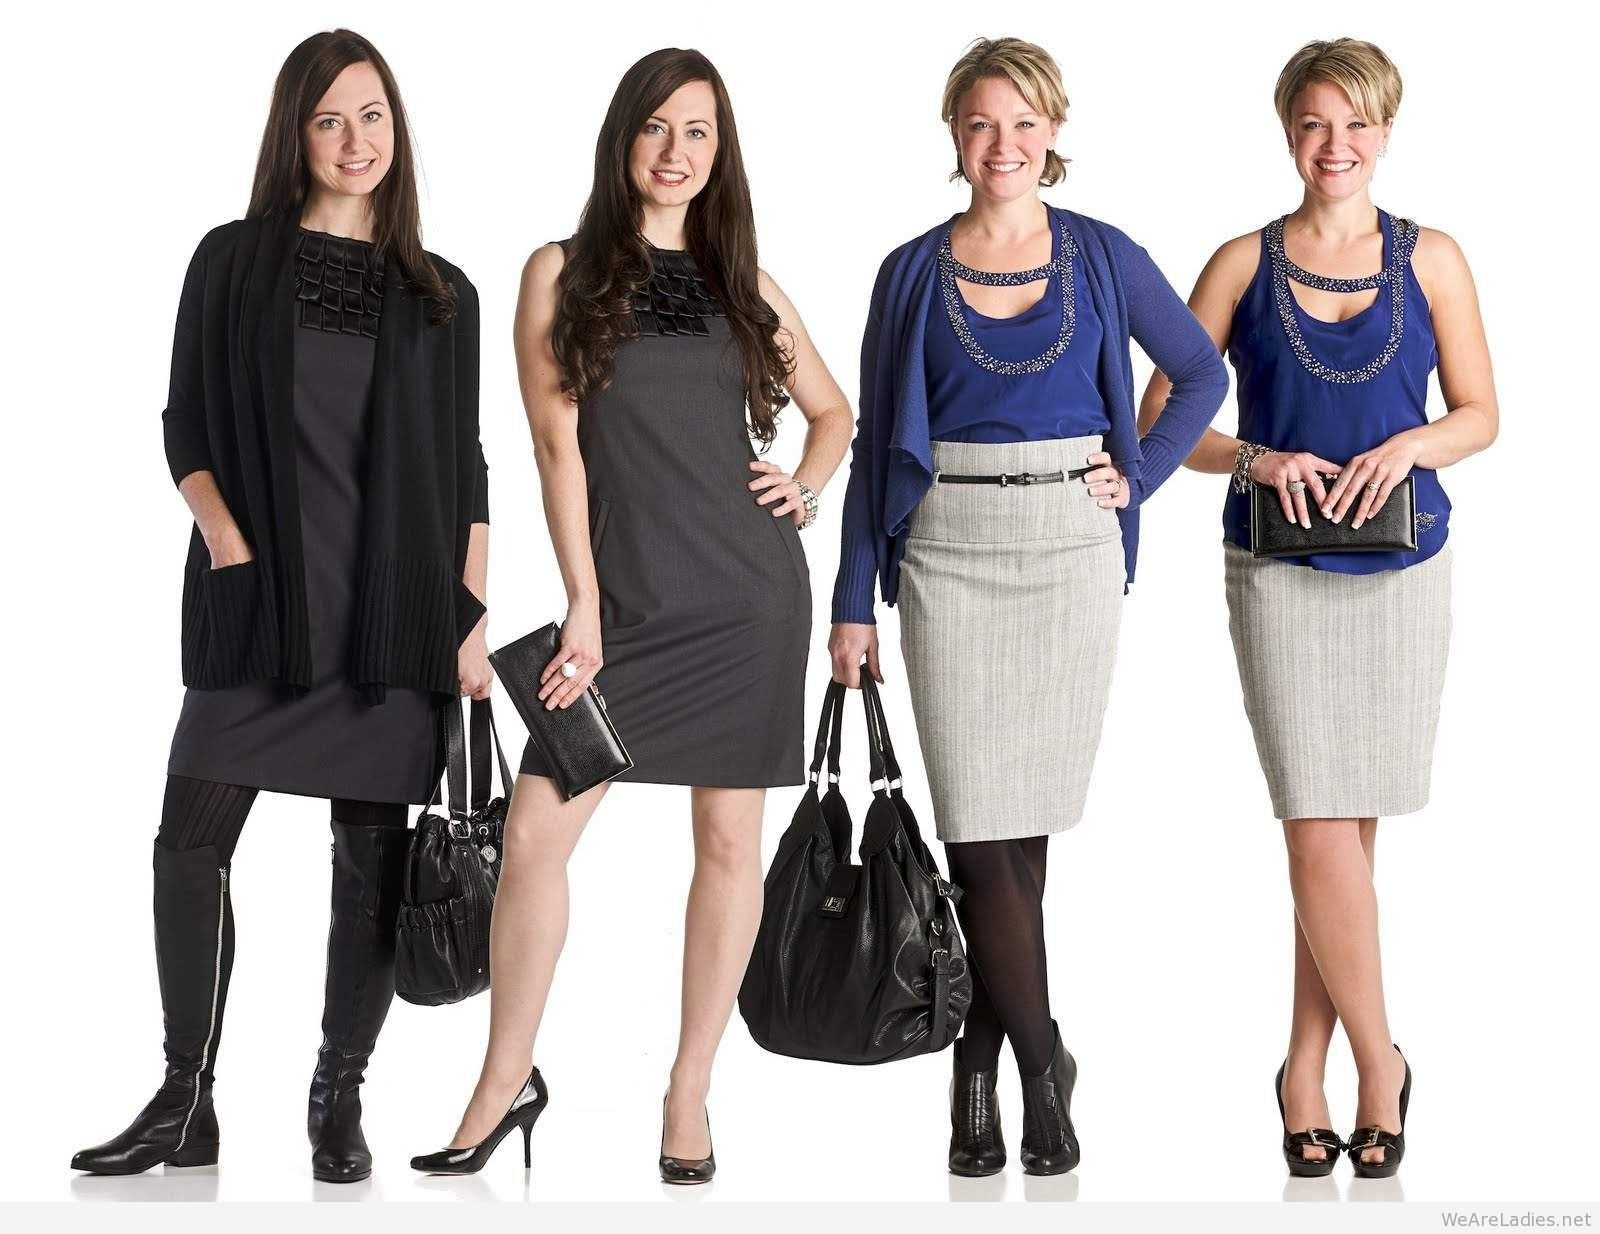 High Waist Pencil Skirts for the Professional Plus Sized Woman